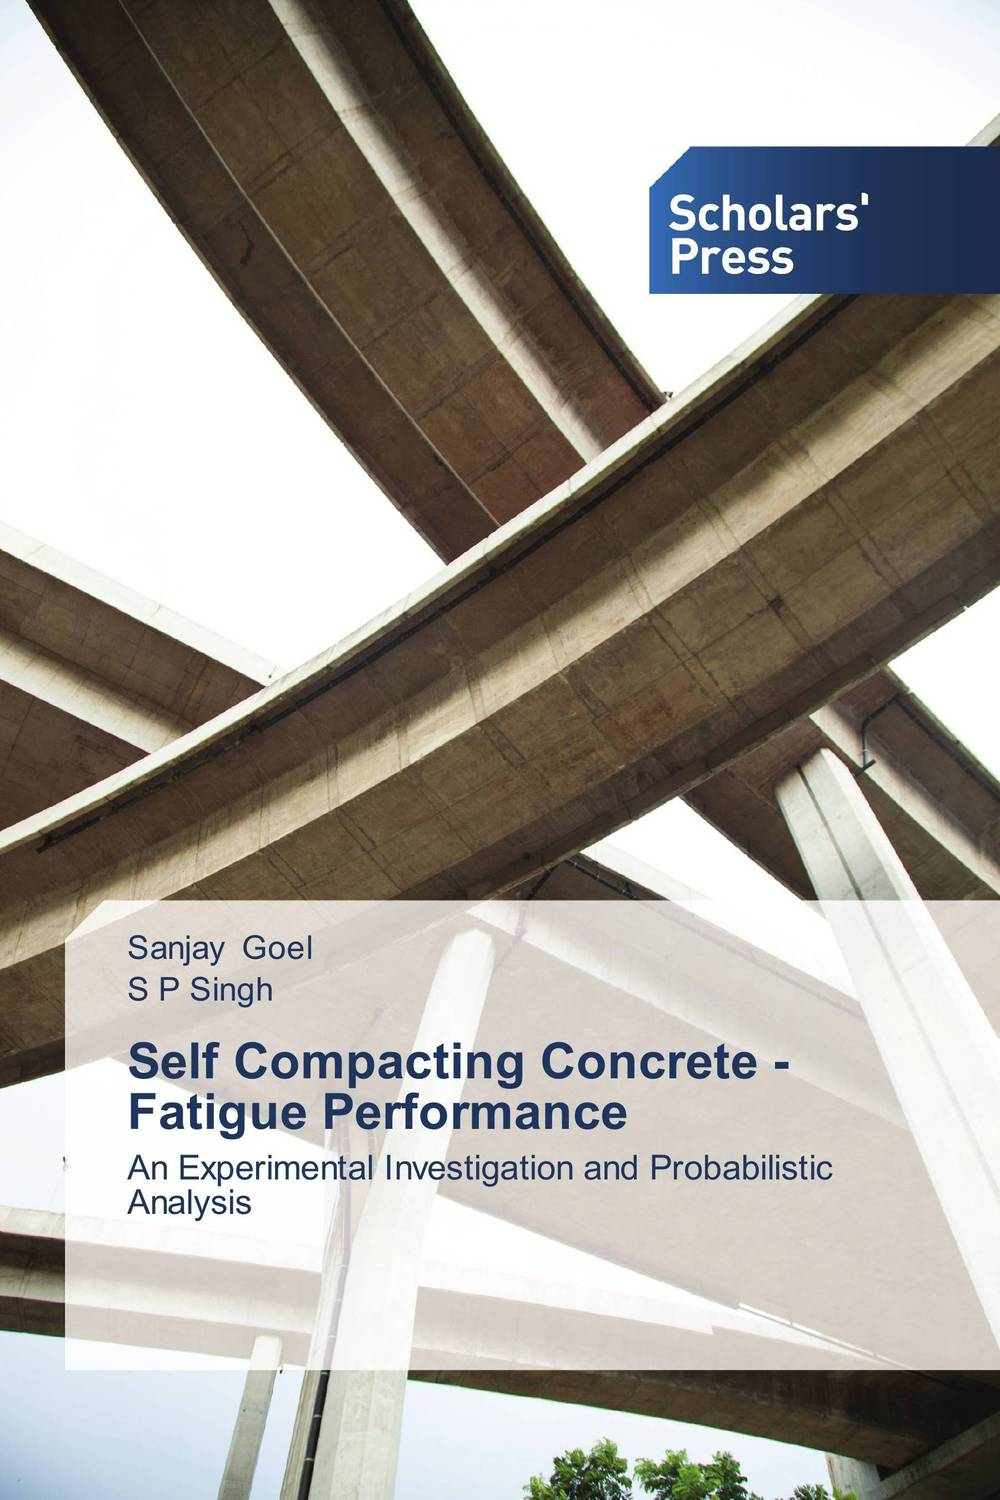 Self Compacting Concrete - Fatigue Performance fatigue analysis of asphalt concrete based on crack development